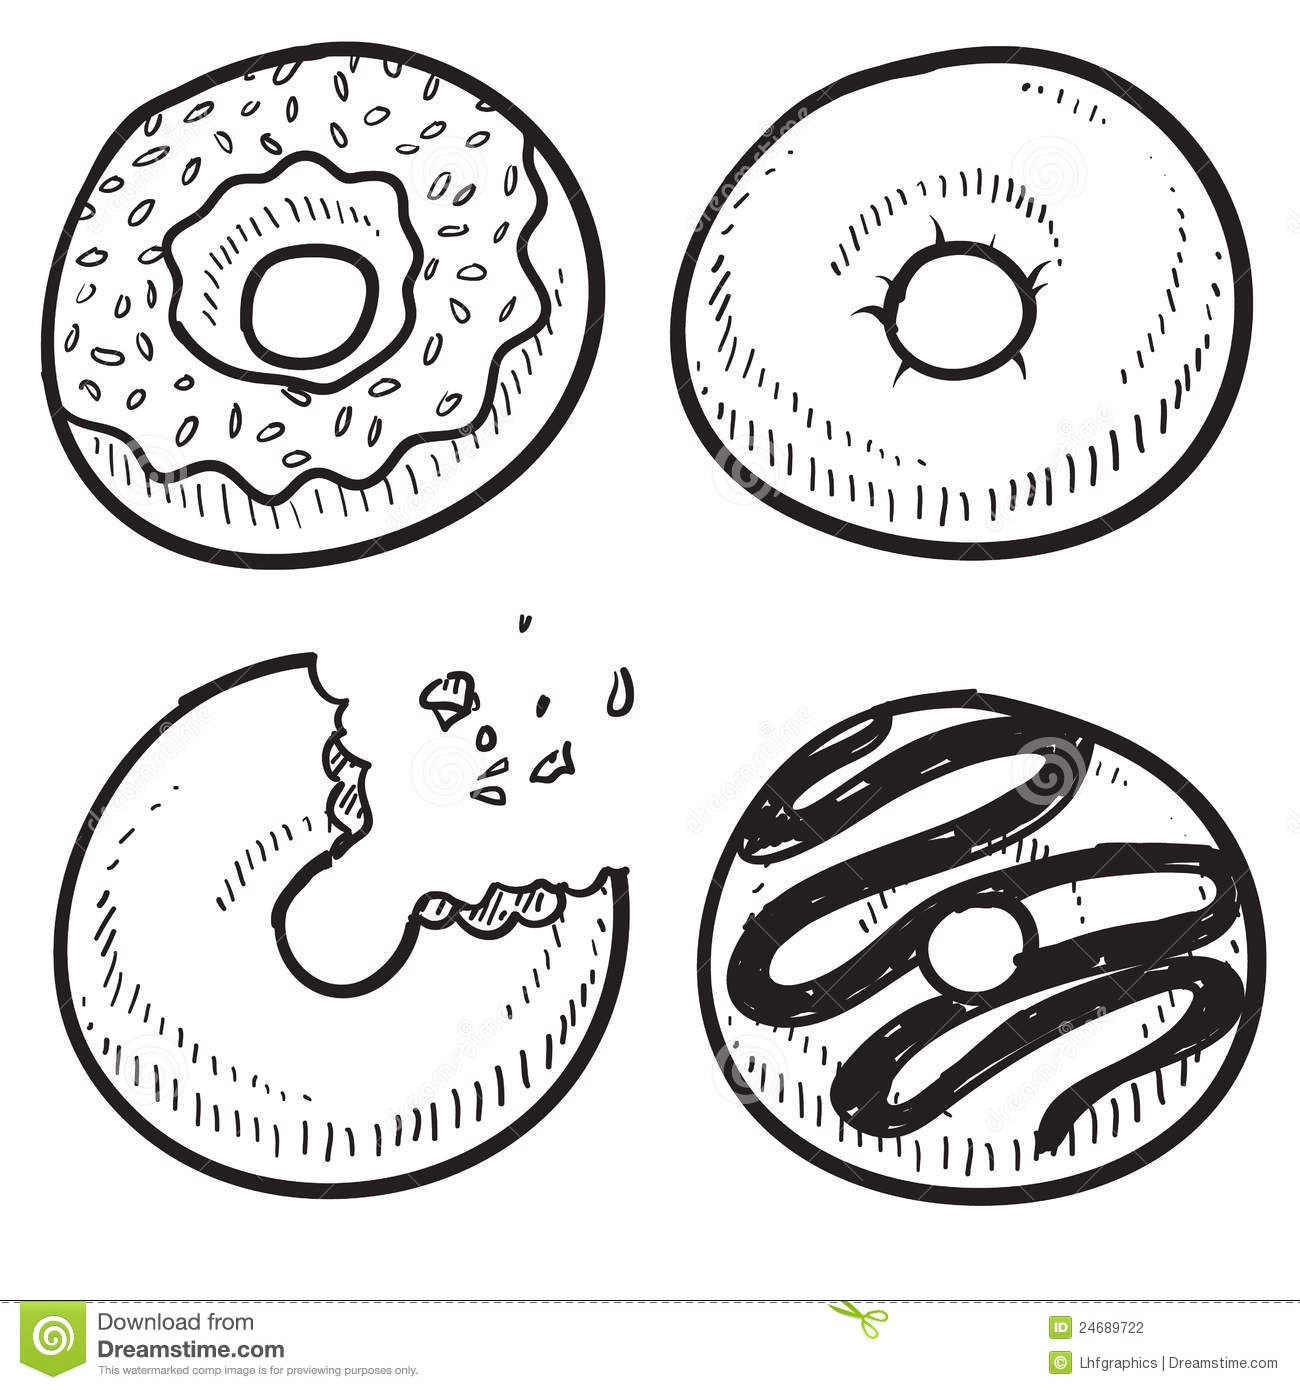 Doodle style donut or doughnut illustration in vector format. Set ...